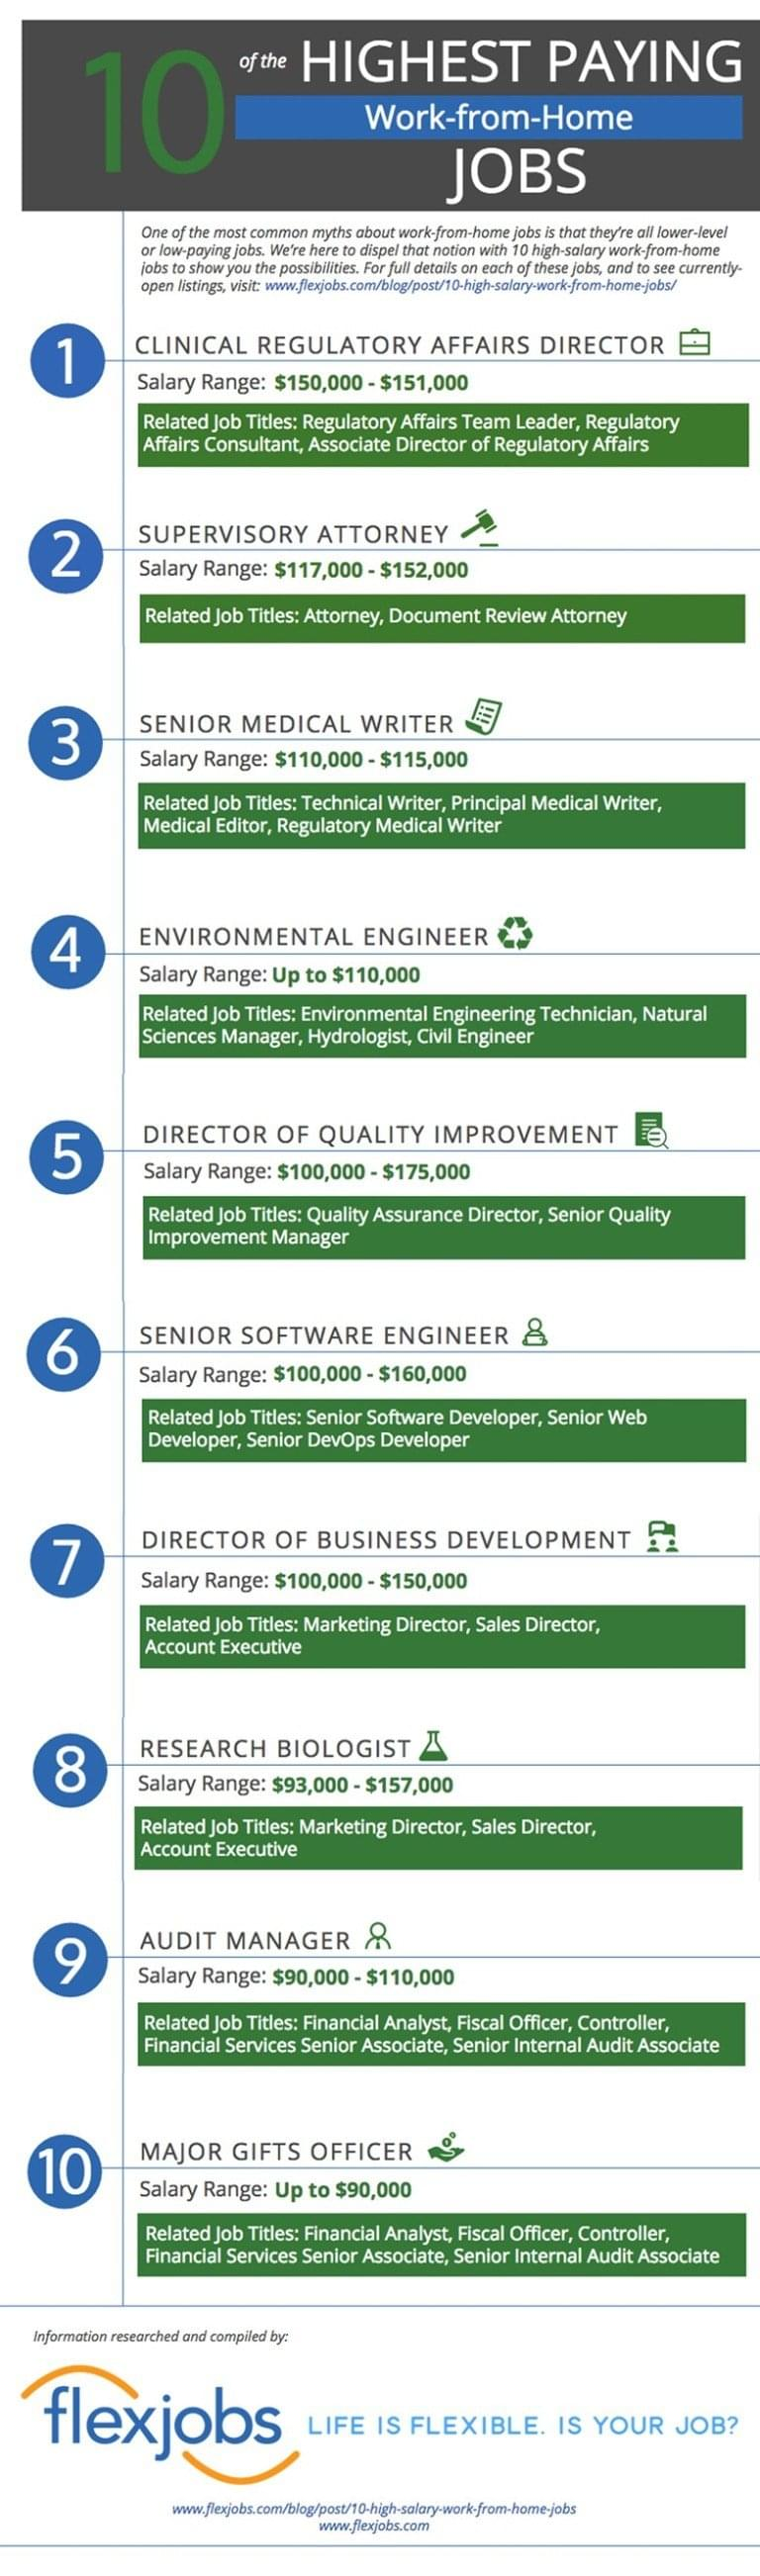 10 of the Highest Paying Work from Home Jobs (Infographic)